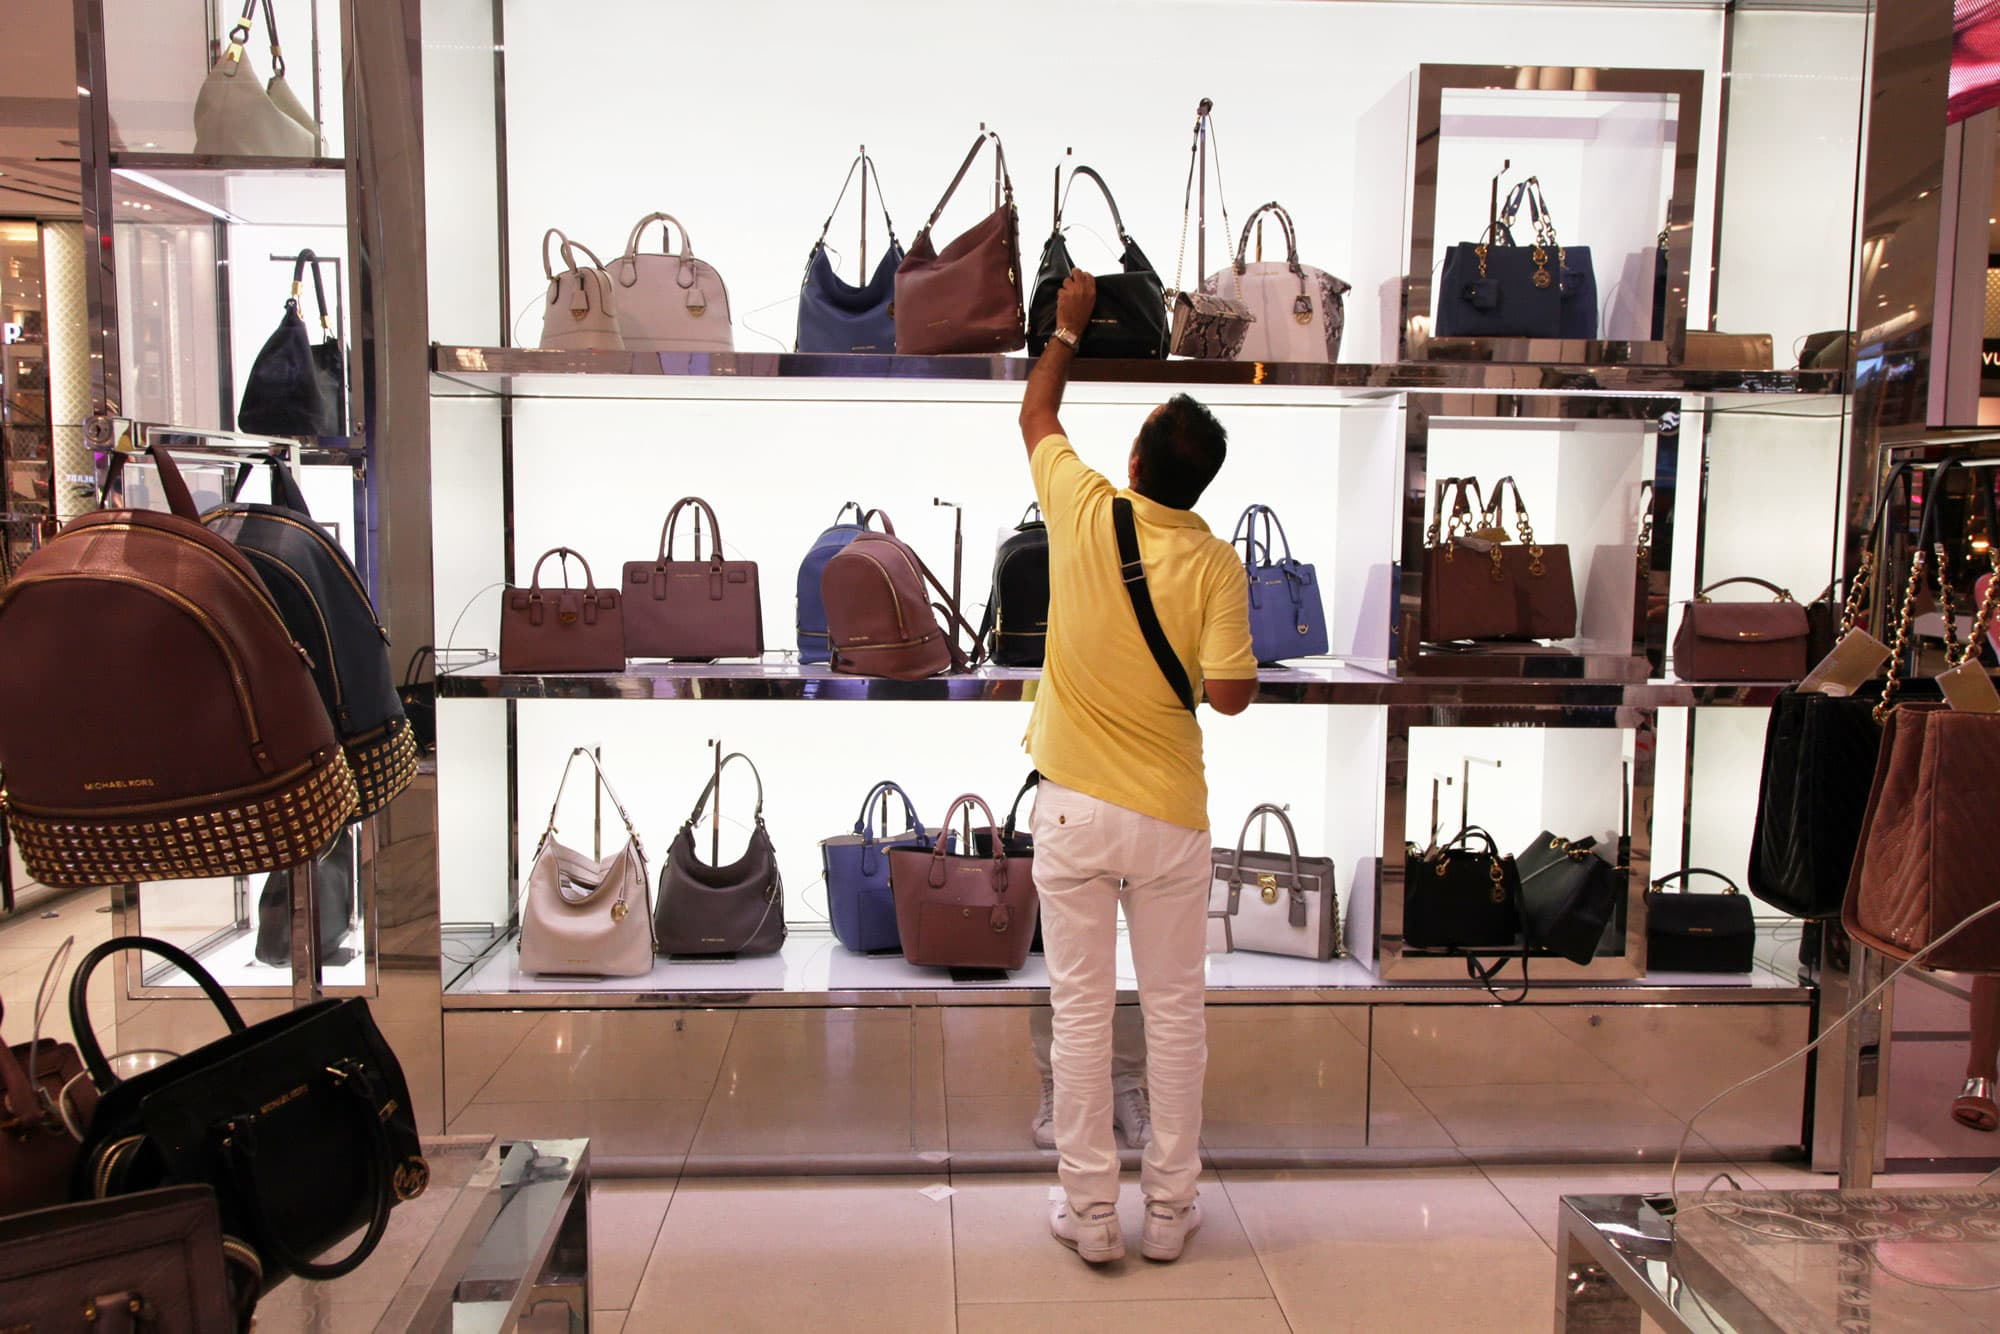 Stores Up Michael Brand Is Fed Its Department Kors With Damaging SzGqVUMp